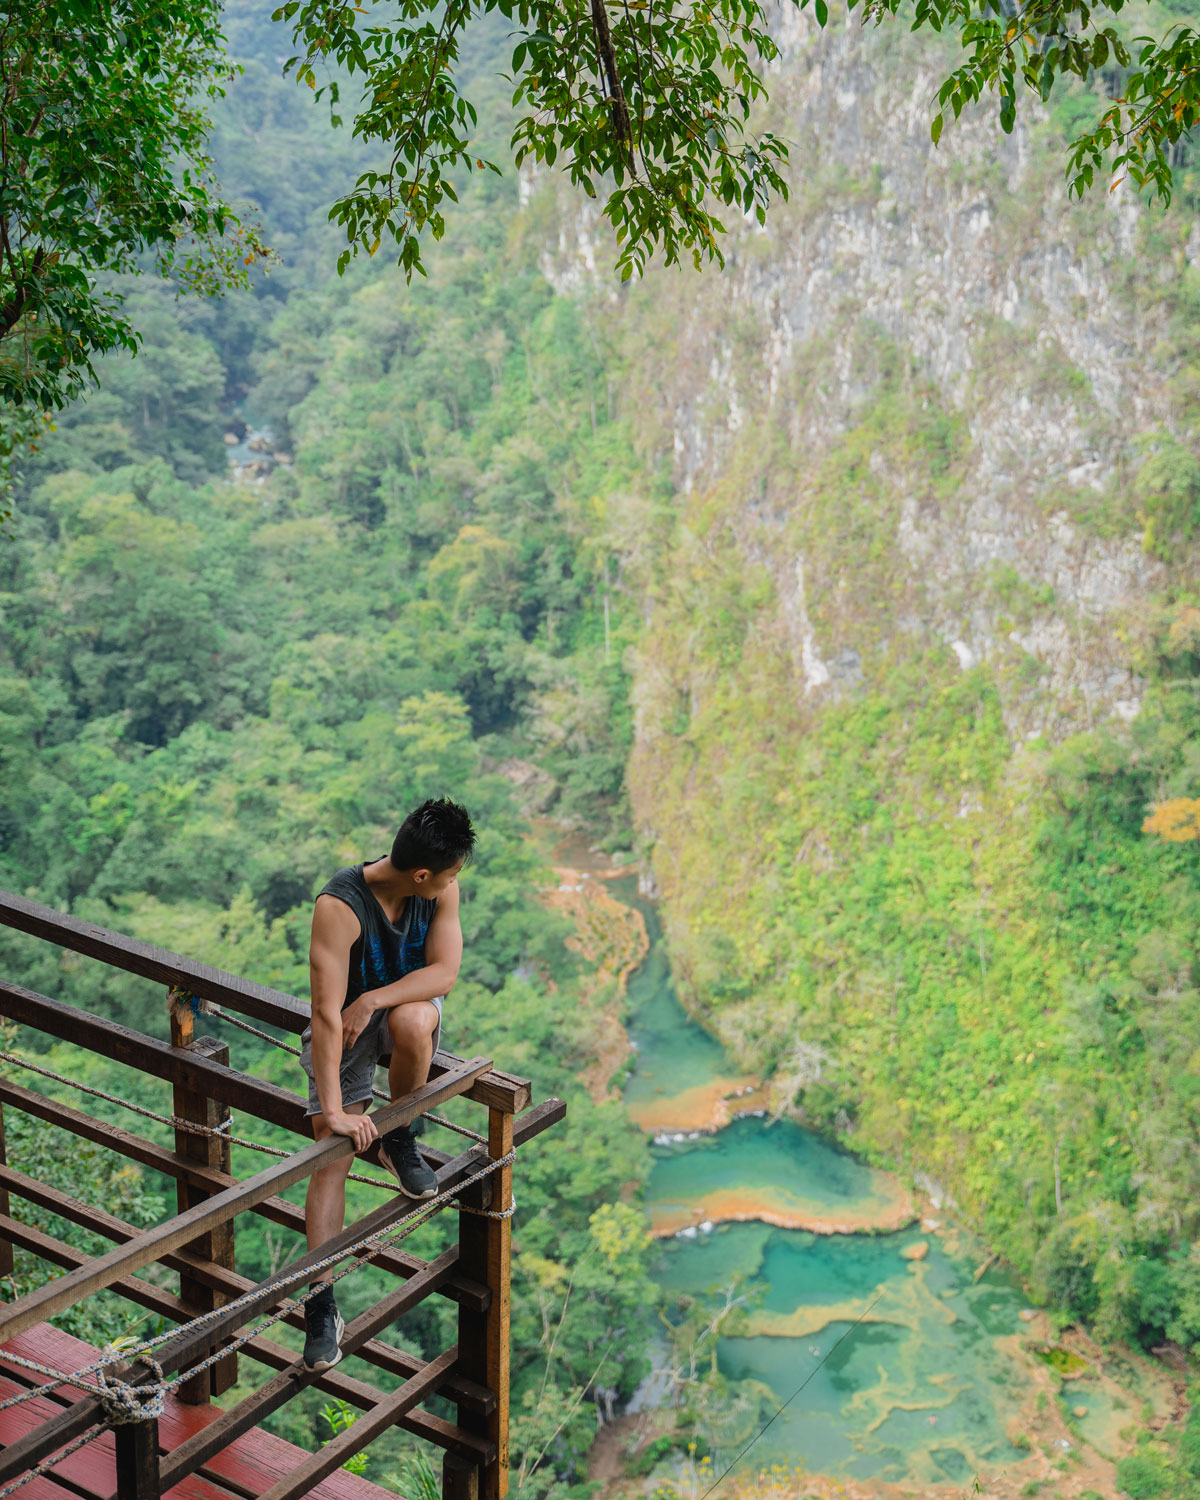 Semuc Champey is a natural paradise in Guatemala. Here are the top places to visit in Guatemala and the best things to do in Guatemala for all preferences!